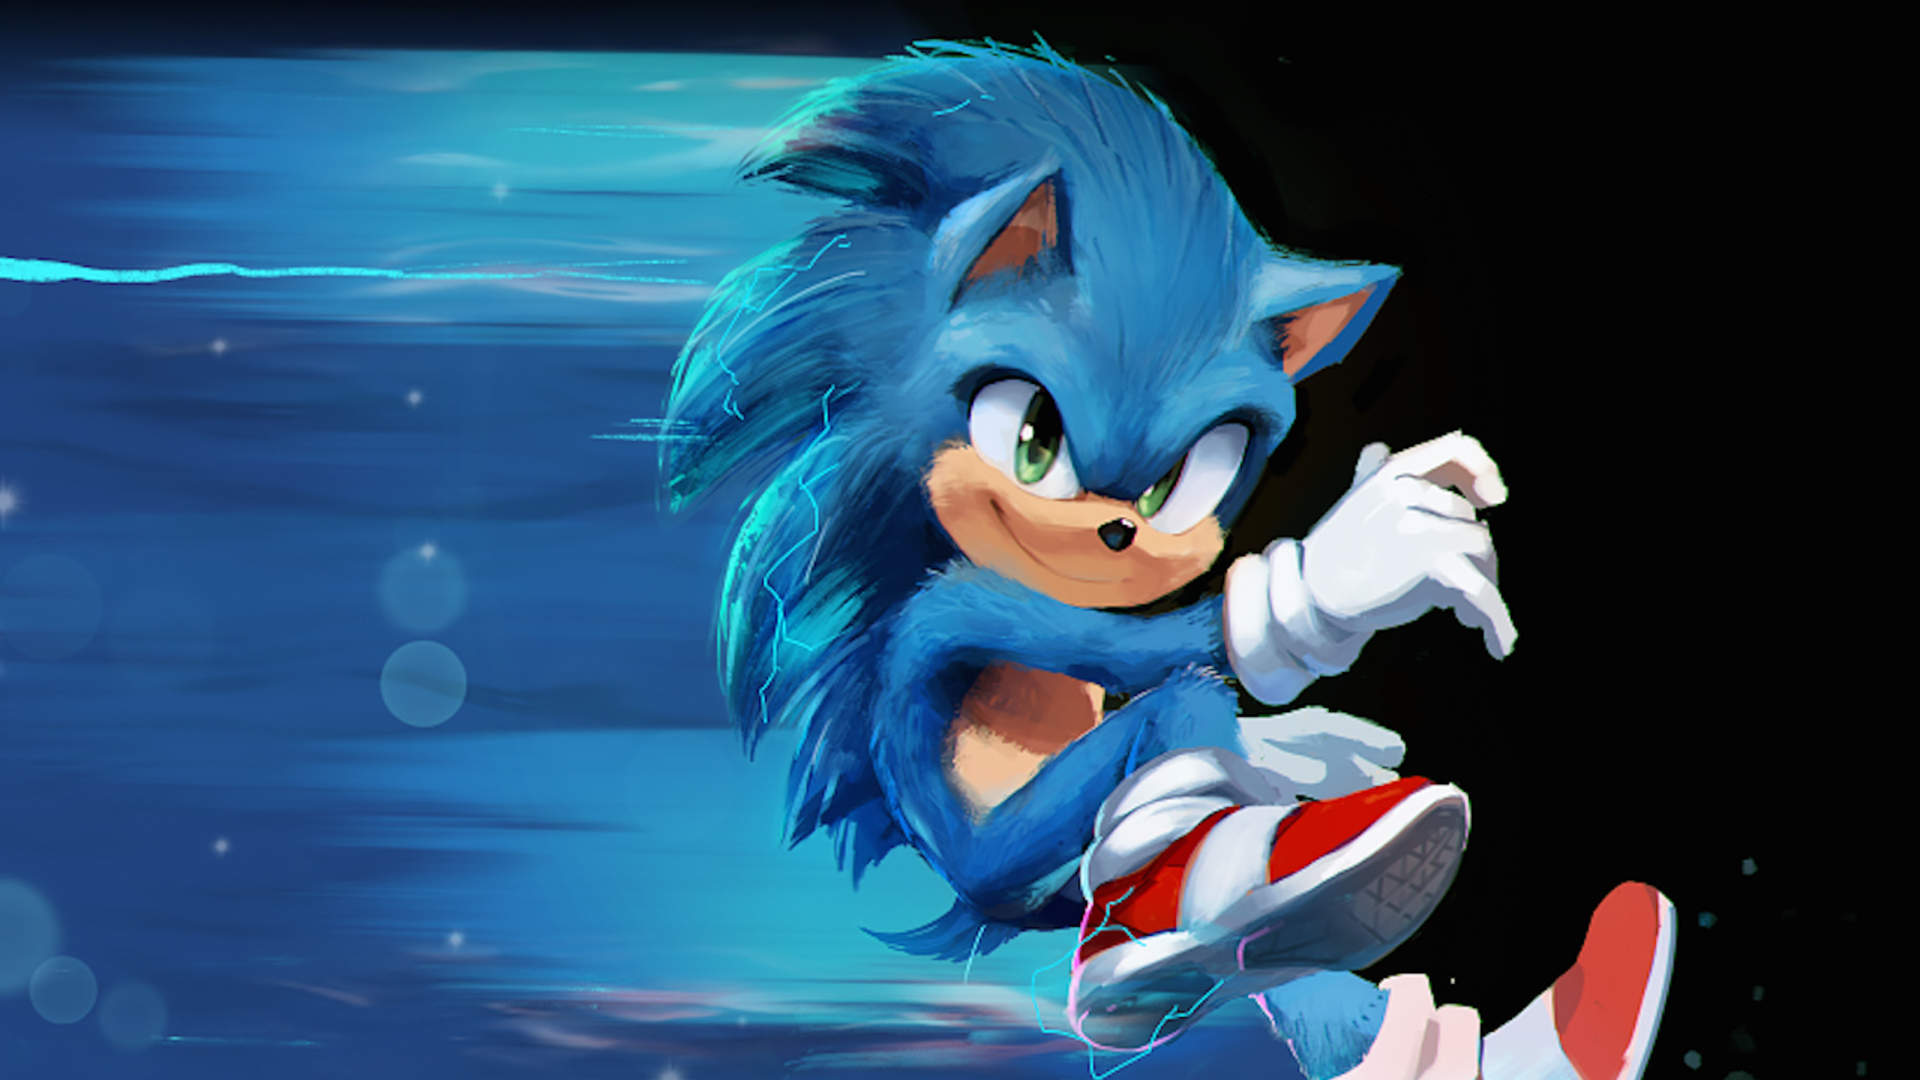 Sonic Paramount Pictures 2020 Review Stg